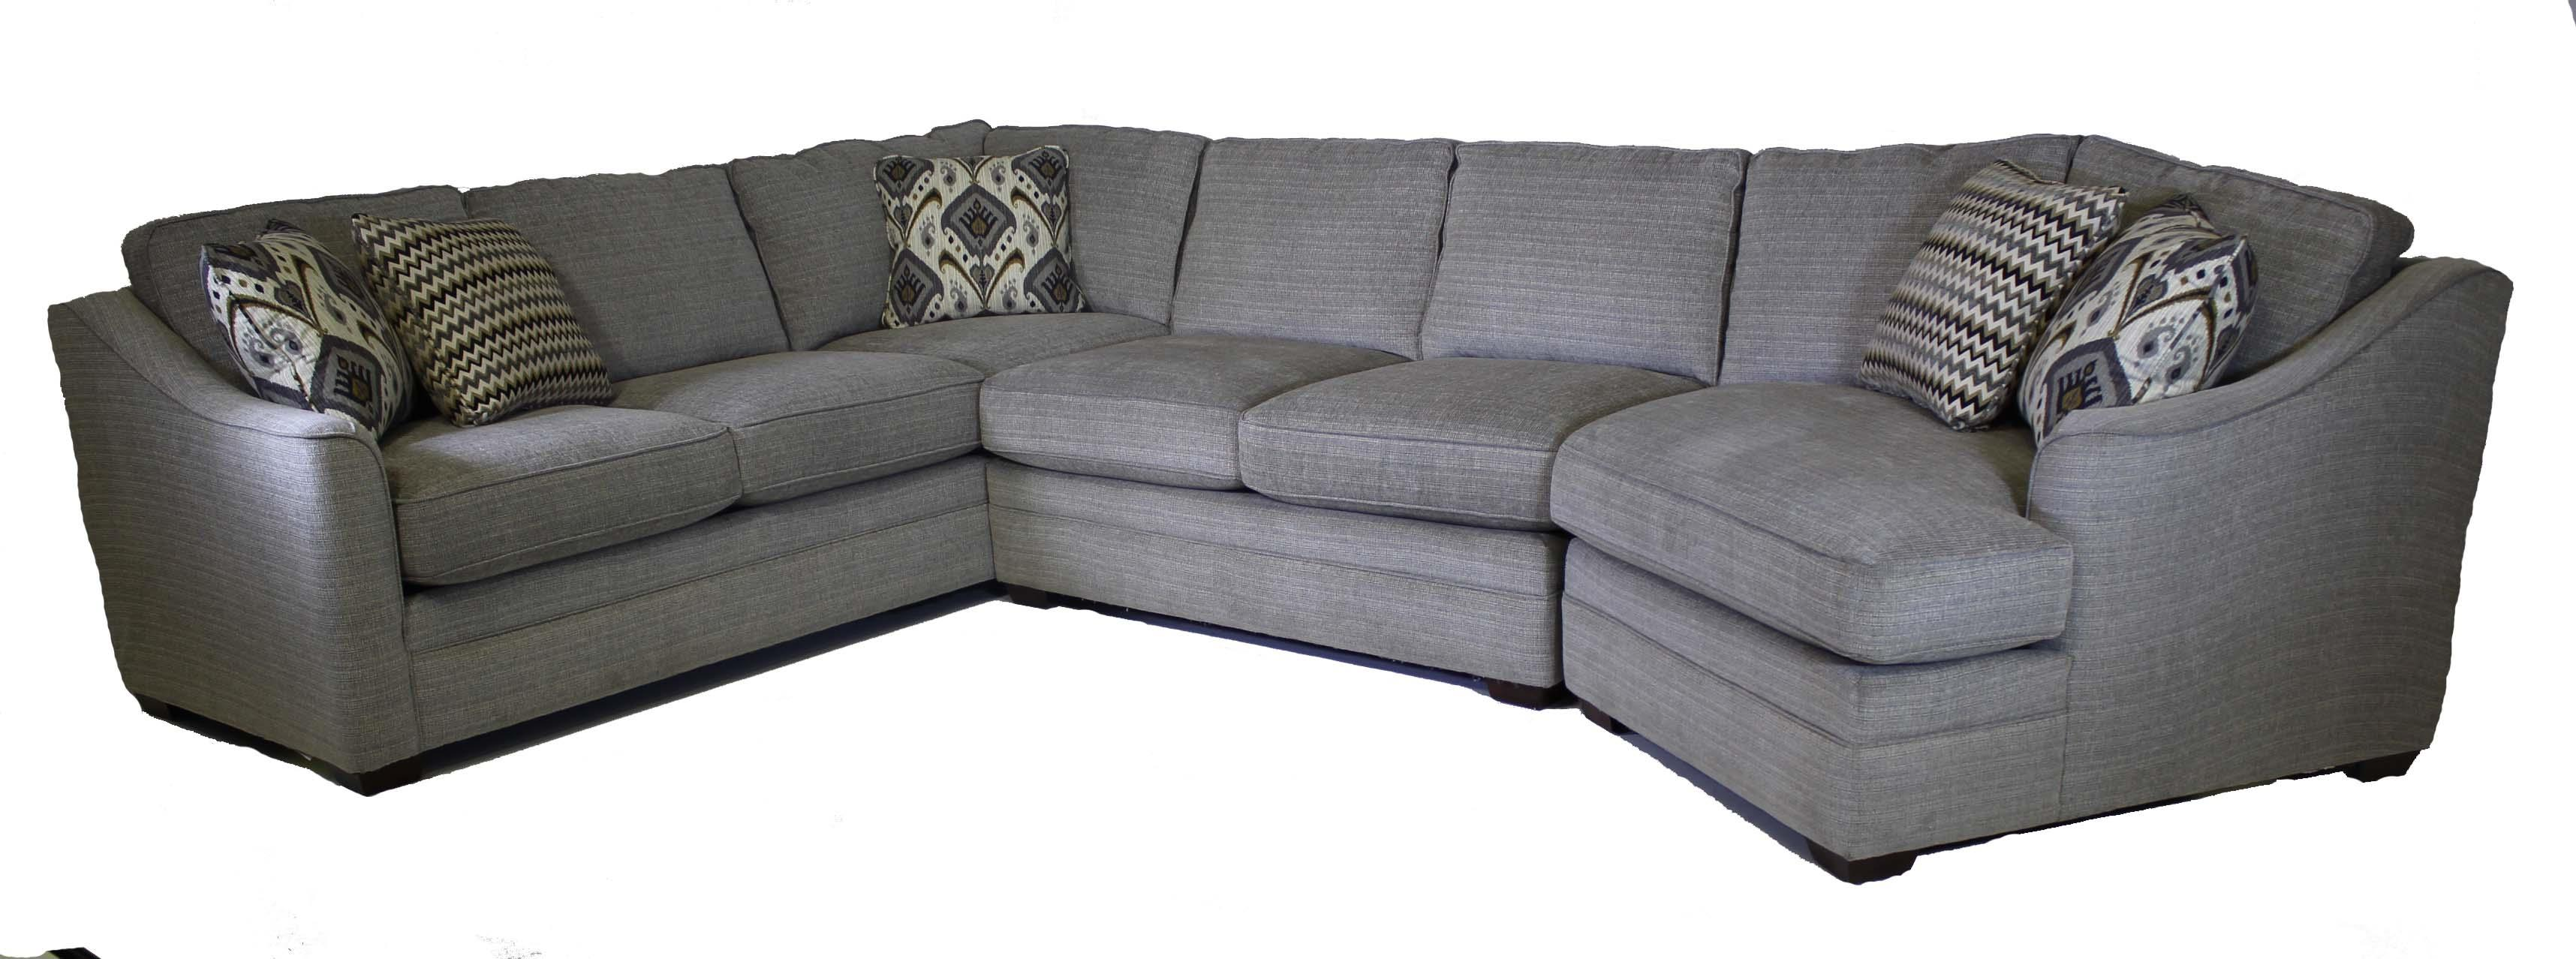 Craftmaster F9 Custom Collection Customizable 3Piece Sectional  Old Brick Furniture  Sofa